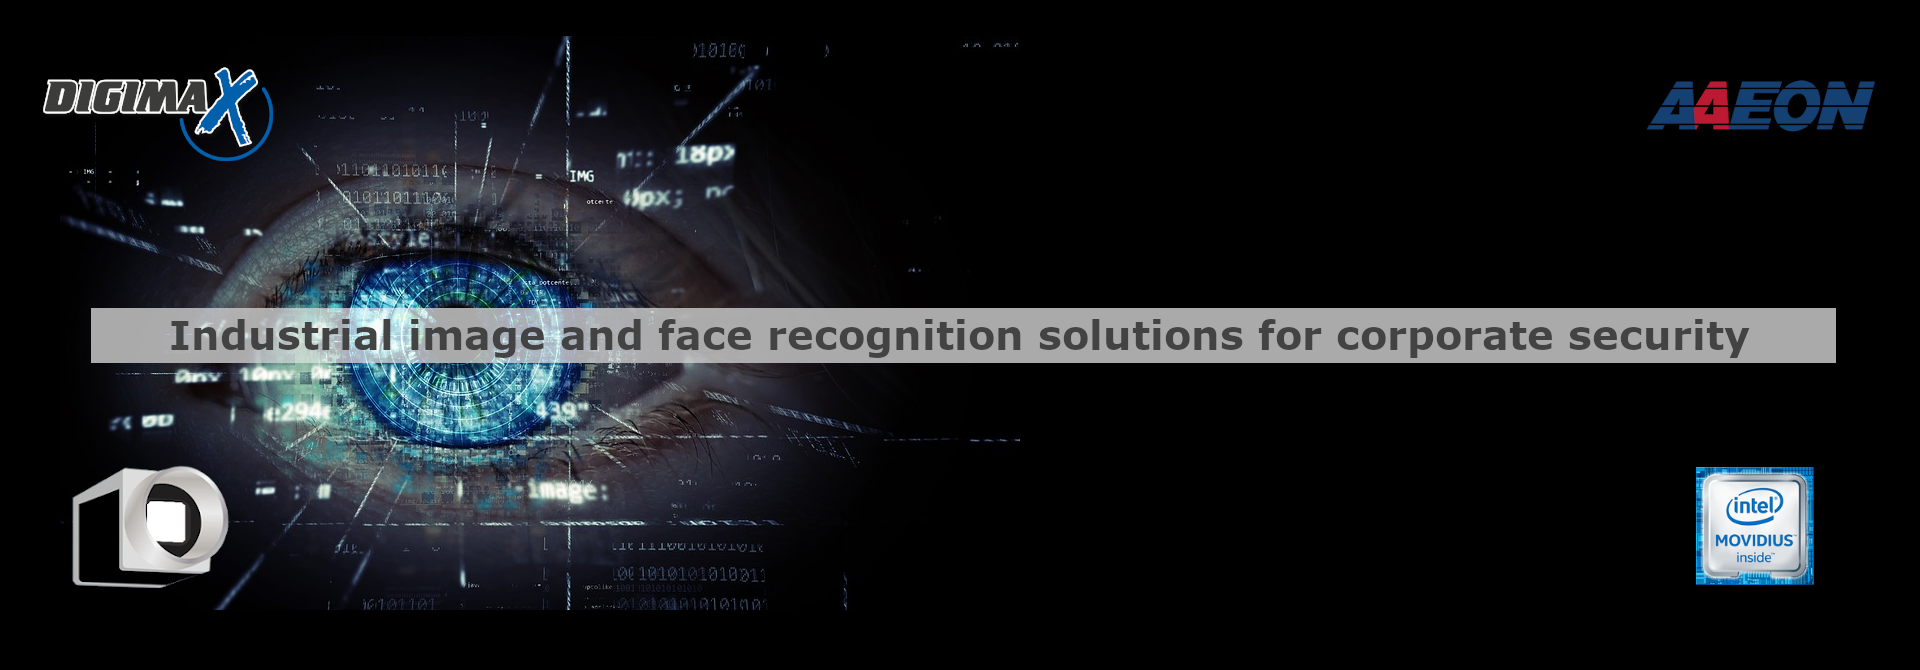 Image and face recognition applications dedicated to corporate security